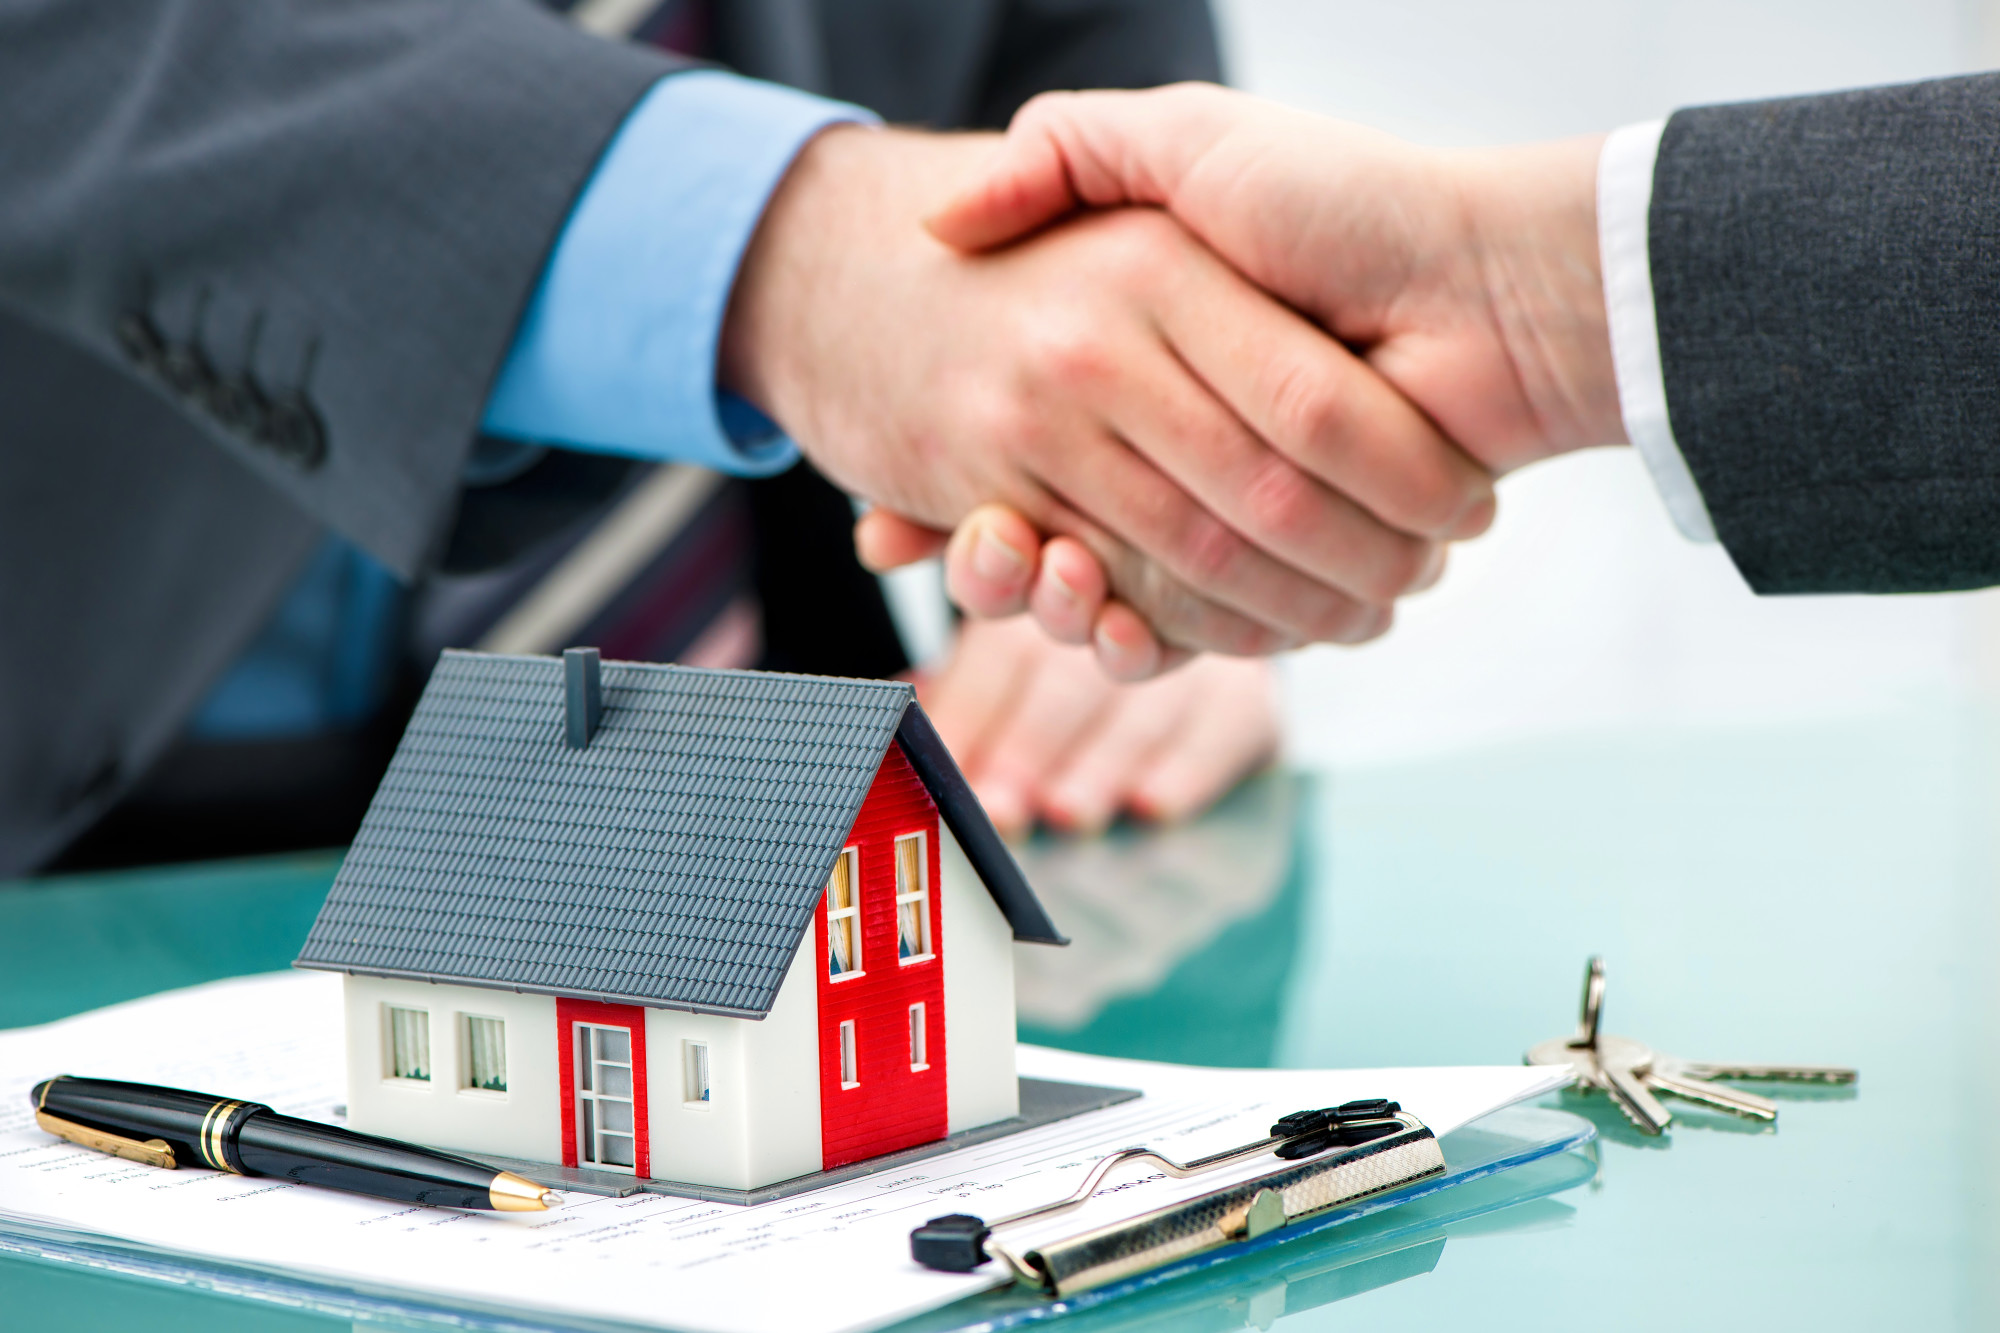 Attention, Homeowners! Here Are the Do's and Don'ts of Home Selling